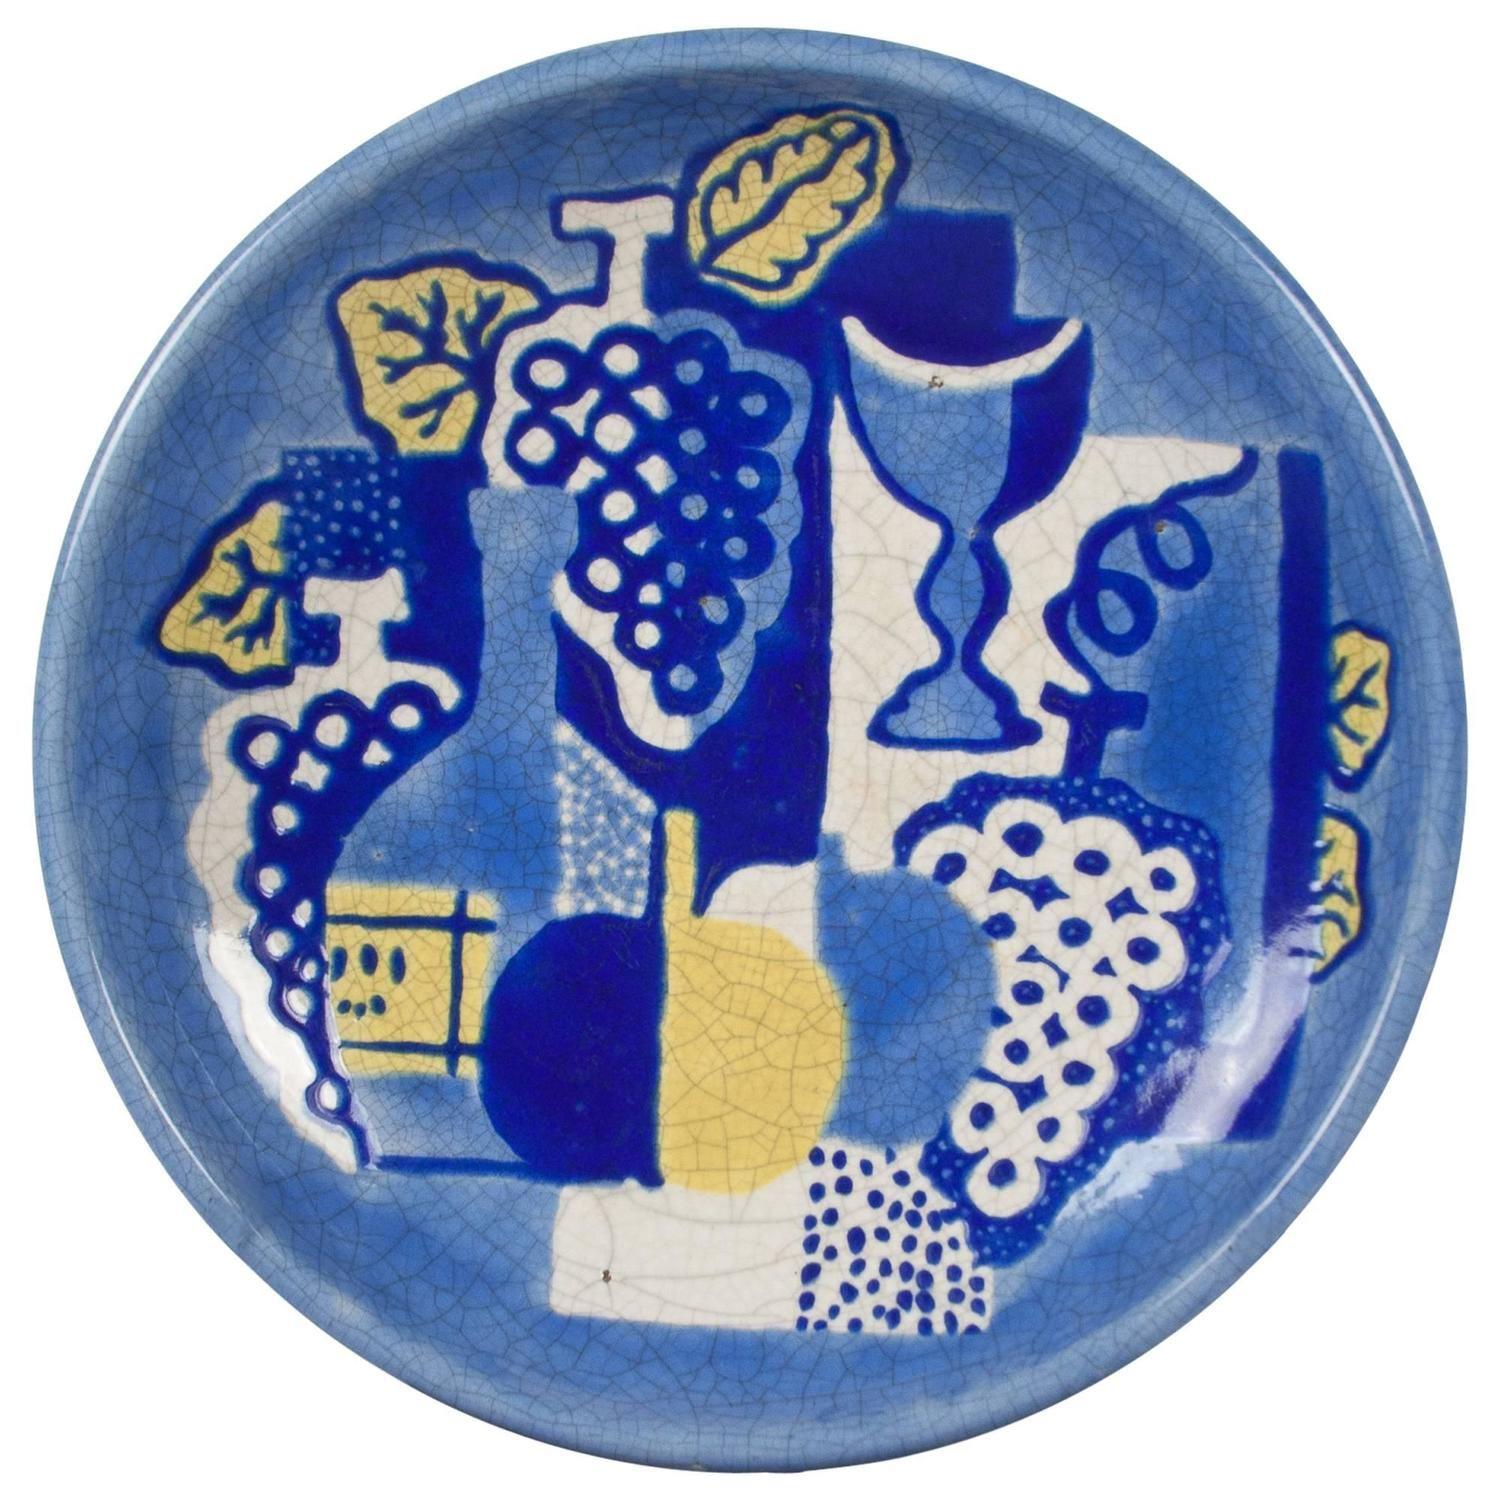 'Cubist' Still Life Ceramic Charger by Primavera, French, 1930s